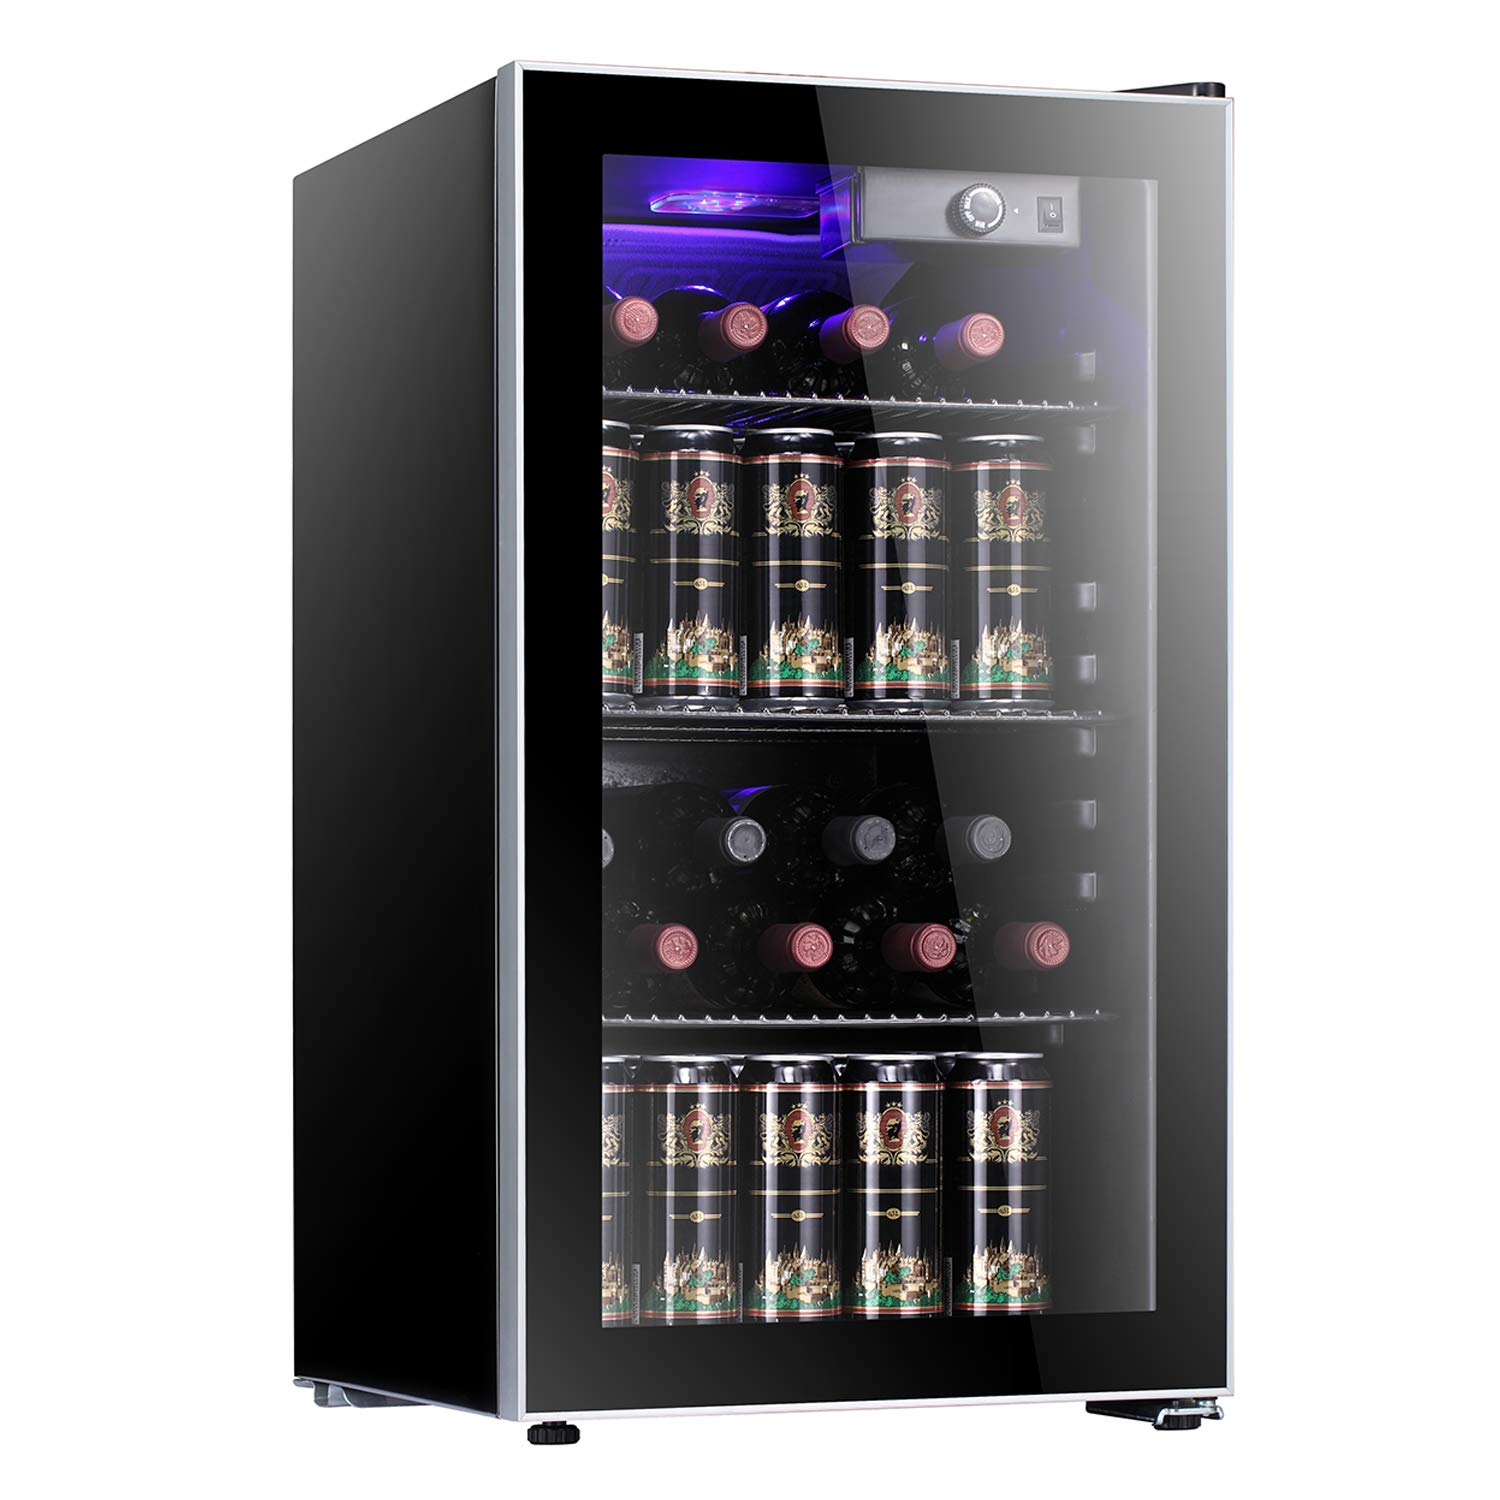 Tavata 26 Bottle Wine Cooler-Freestanding Single Zone Fridge and Cellar Chiller for Red and White Wine Quiet Wine Refrigerator with UV Protection Glass Door,Compressor Refrigeration for Counter Top